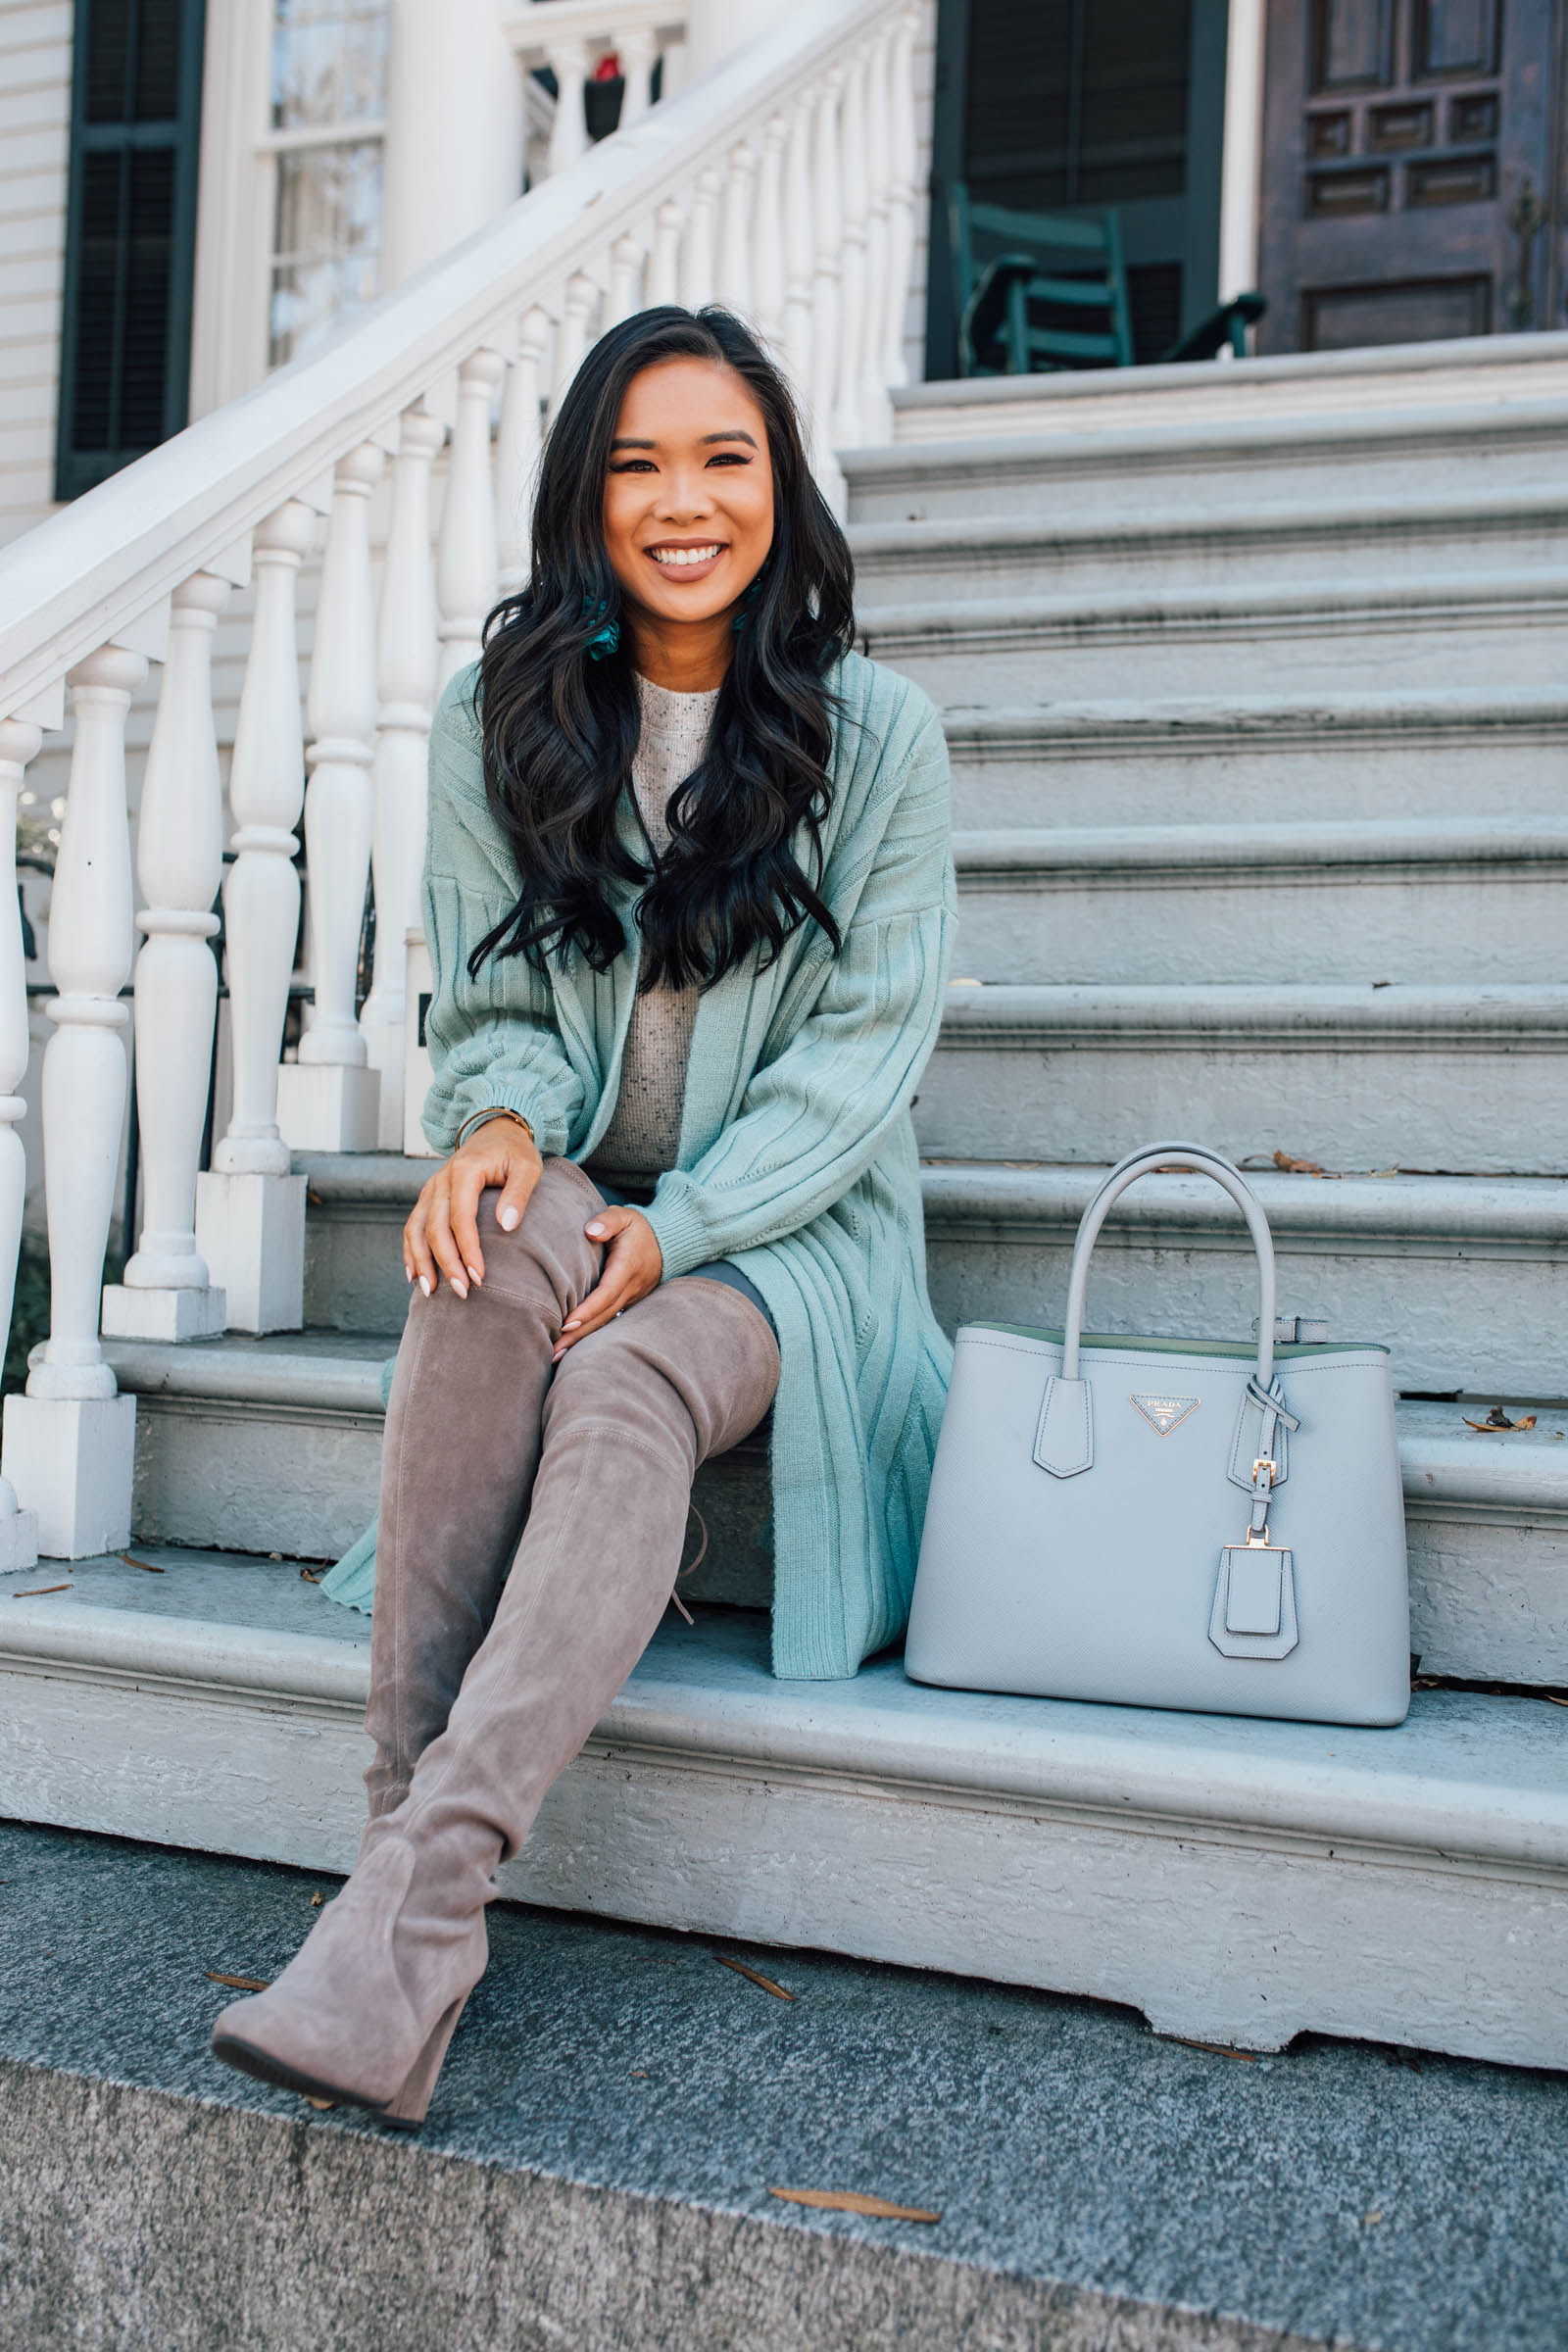 Lifestyle Blog Beauty How To Style A Mint Green Cardigan For Fall And Winter